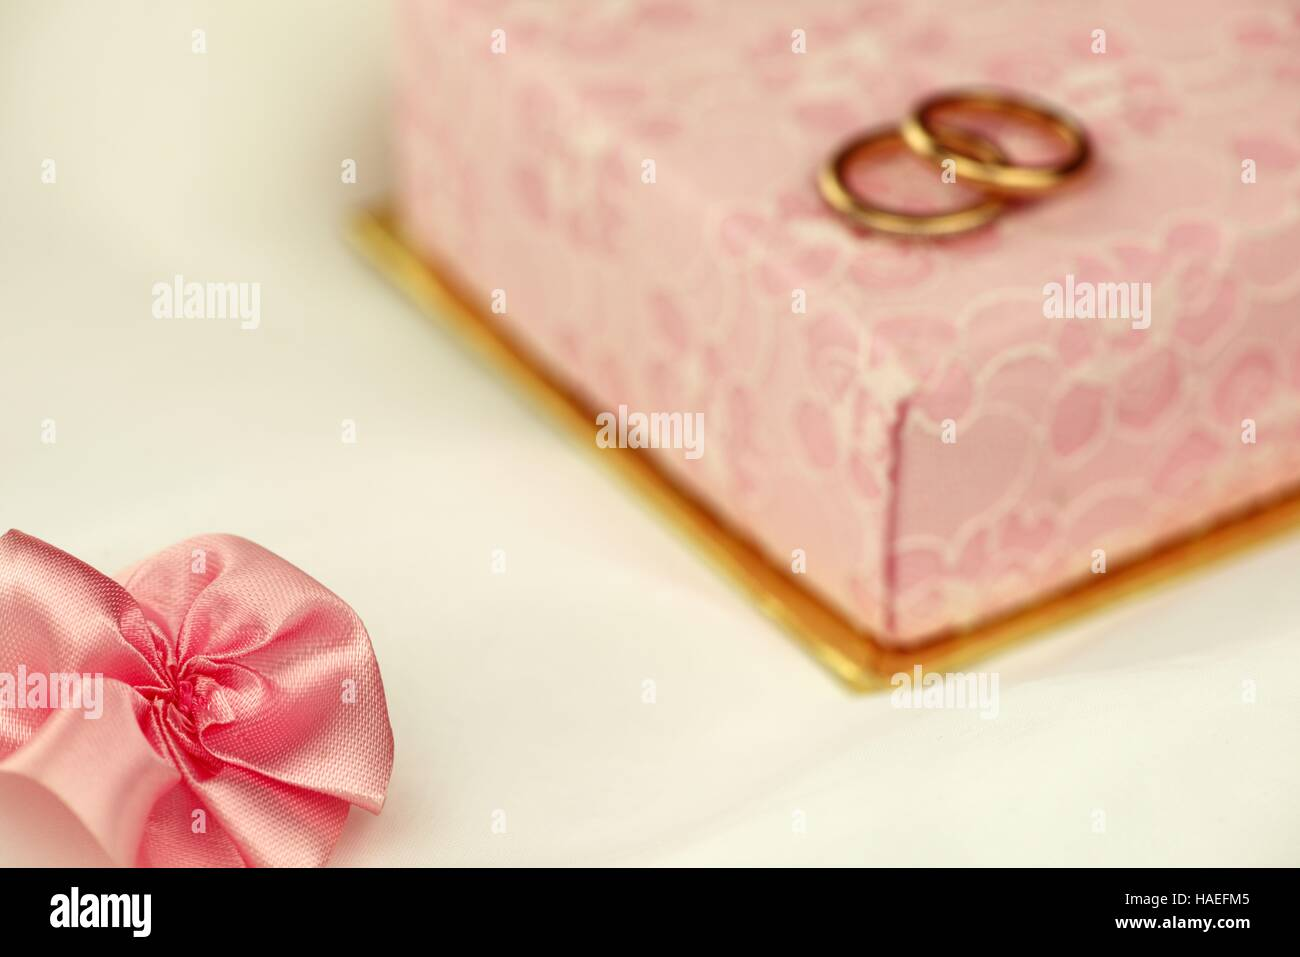 Pink ribbon bow with a gift box and wedding rings in the background - Stock Image